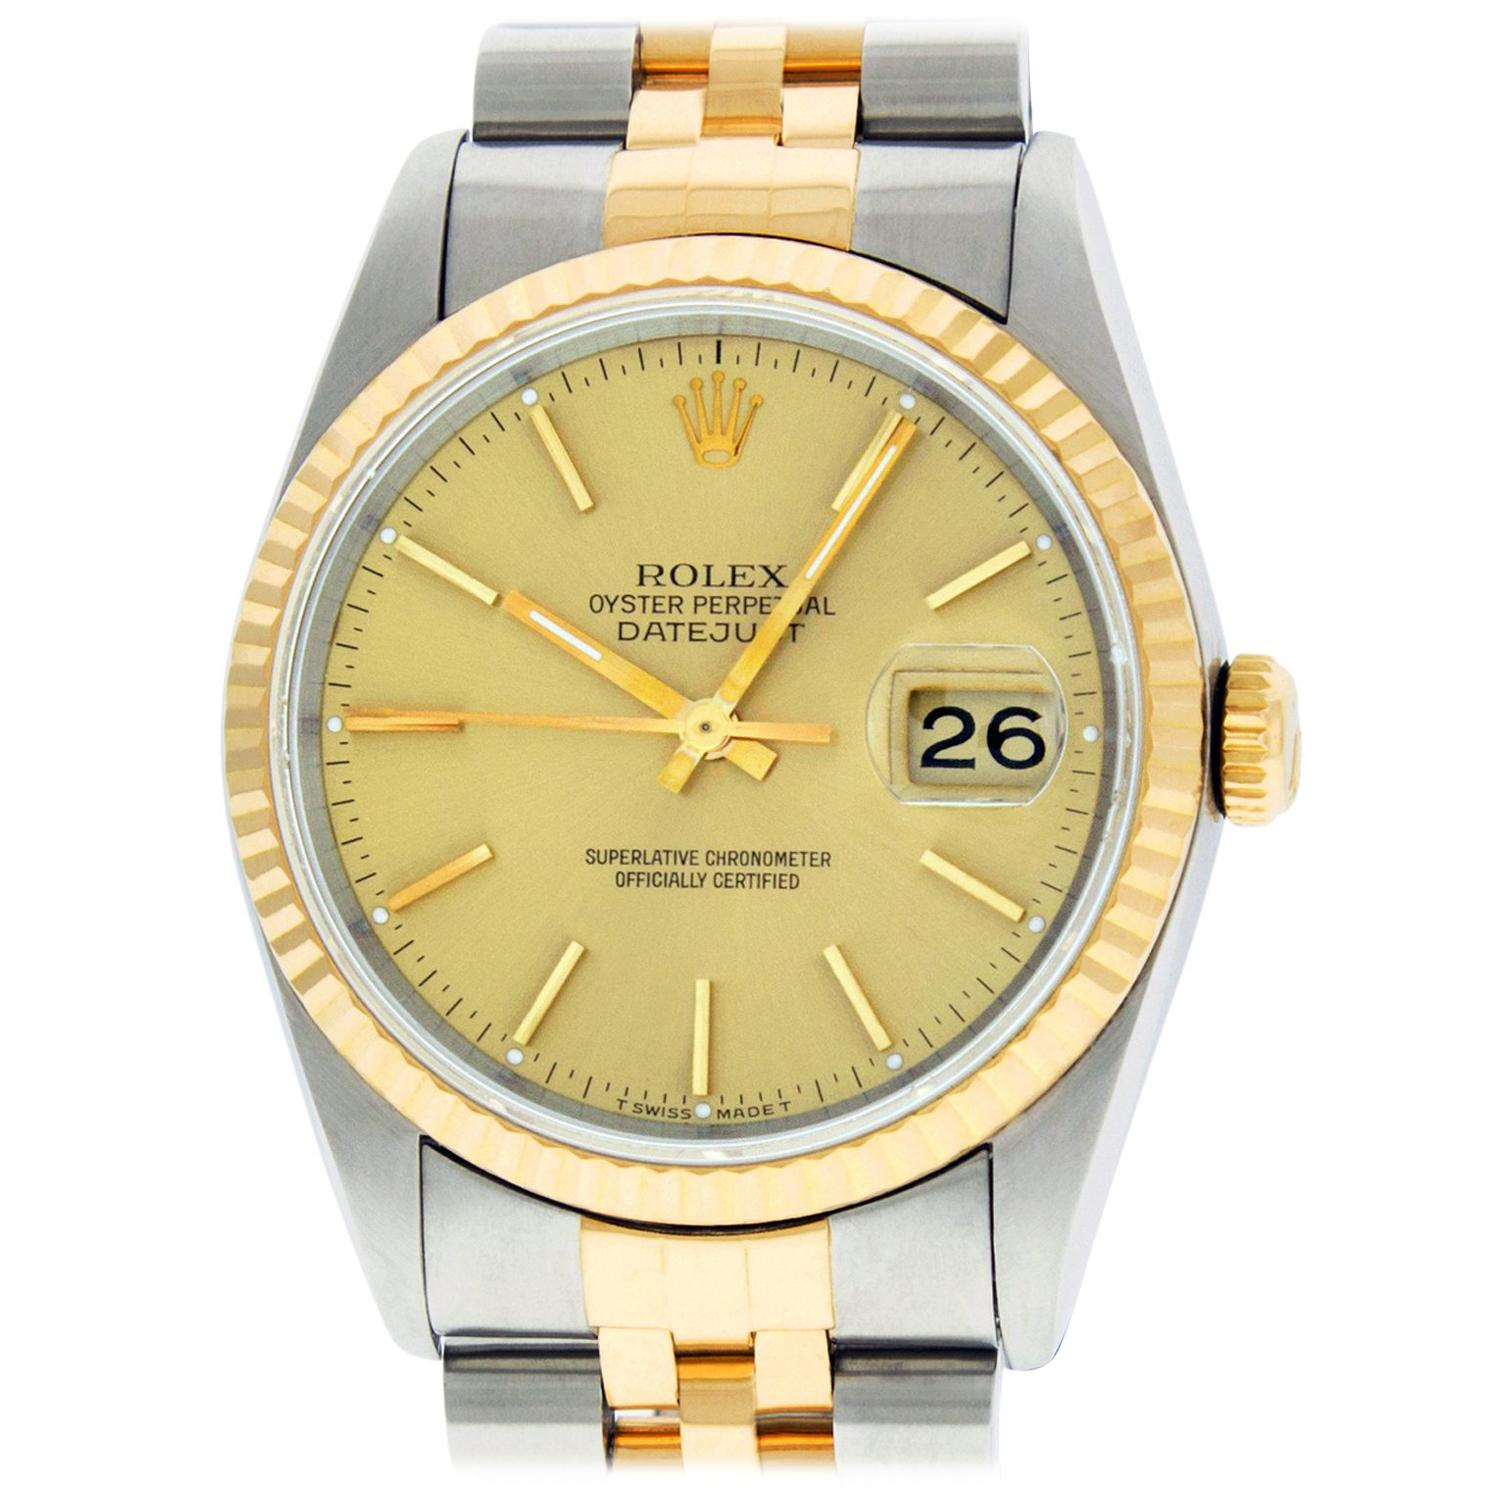 Rolex Men's Datejust 16233 Ss and 18 Karat Yellow Gold Champagne Index Dial